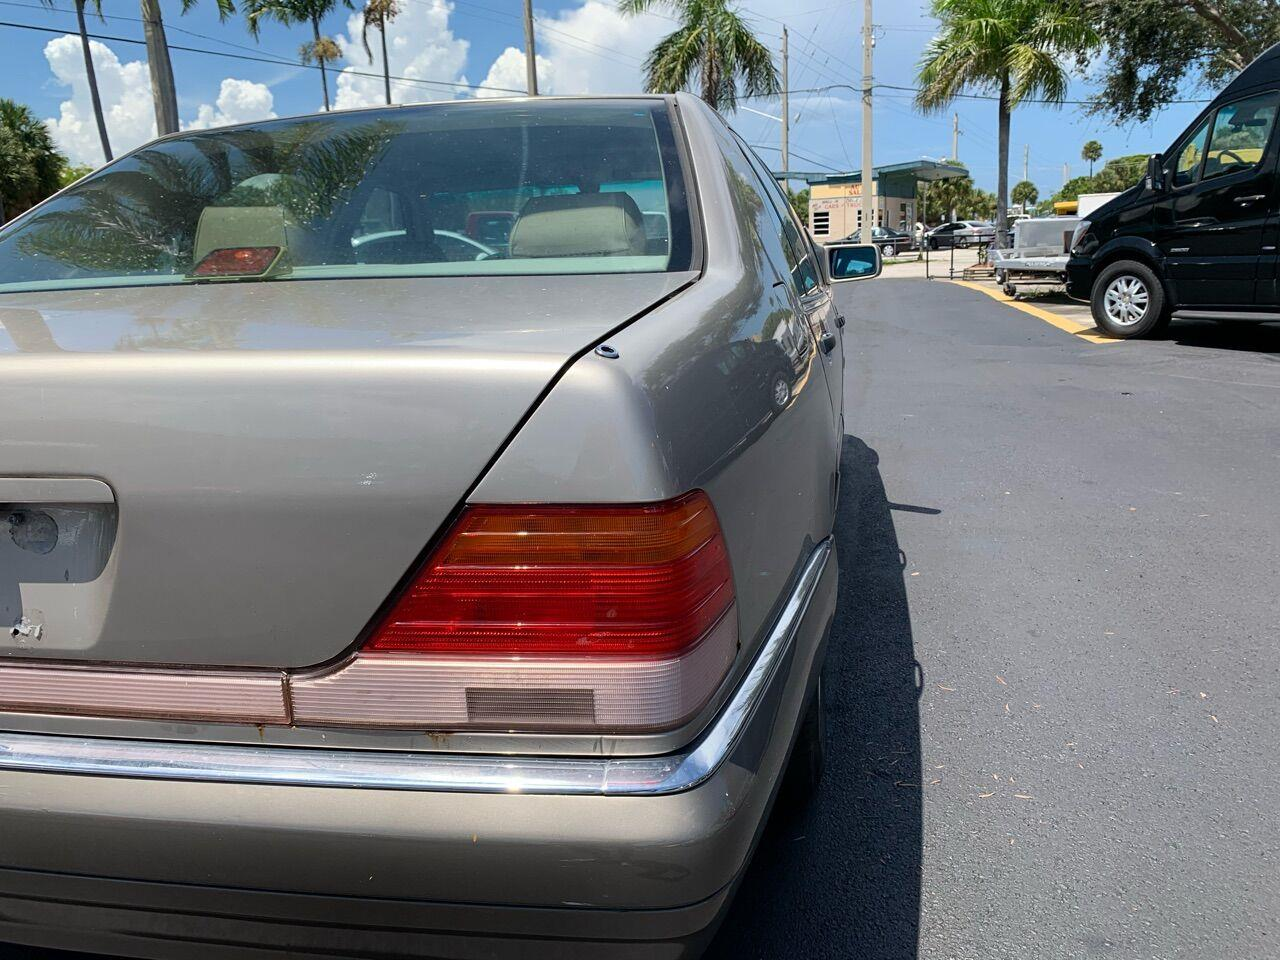 1995 Mercedes-Benz S-Class (CC-1417706) for sale in Pompano Beach, Florida